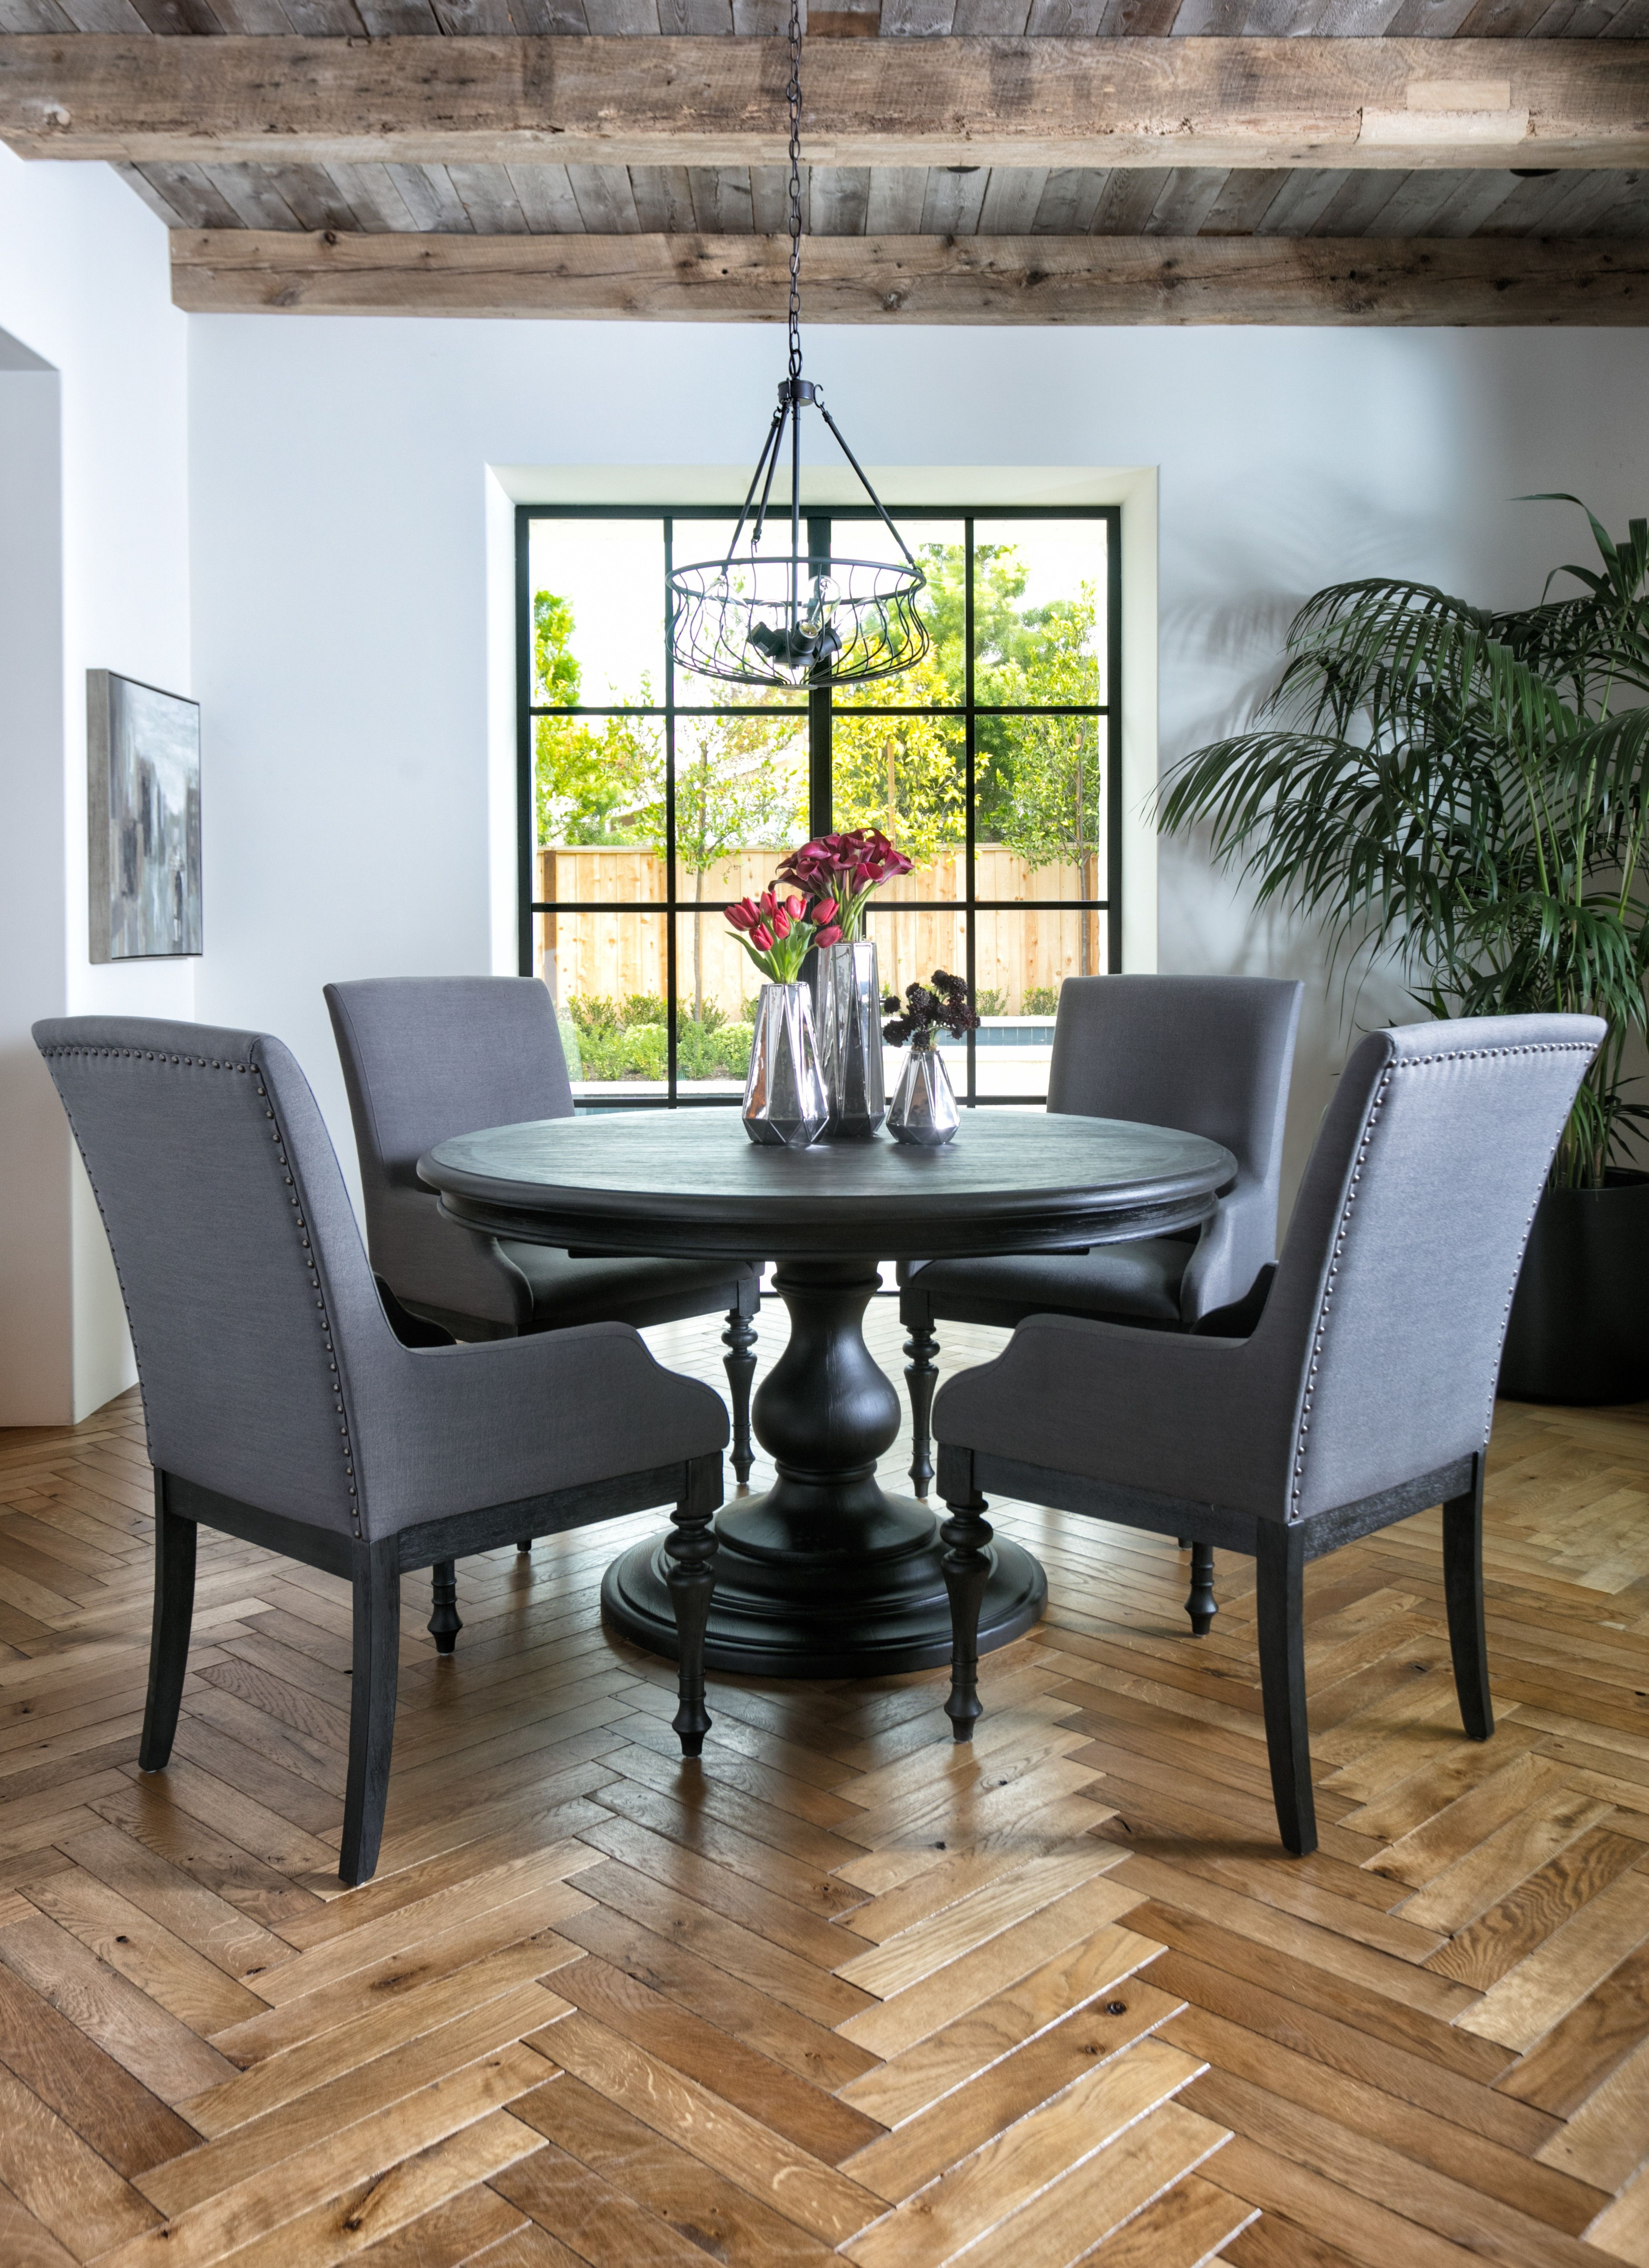 Most Recent Caira Black 5 Piece Round Dining Set With Diamond Back Side Chairs For Caira Black Upholstered Side Chairs (View 5 of 20)